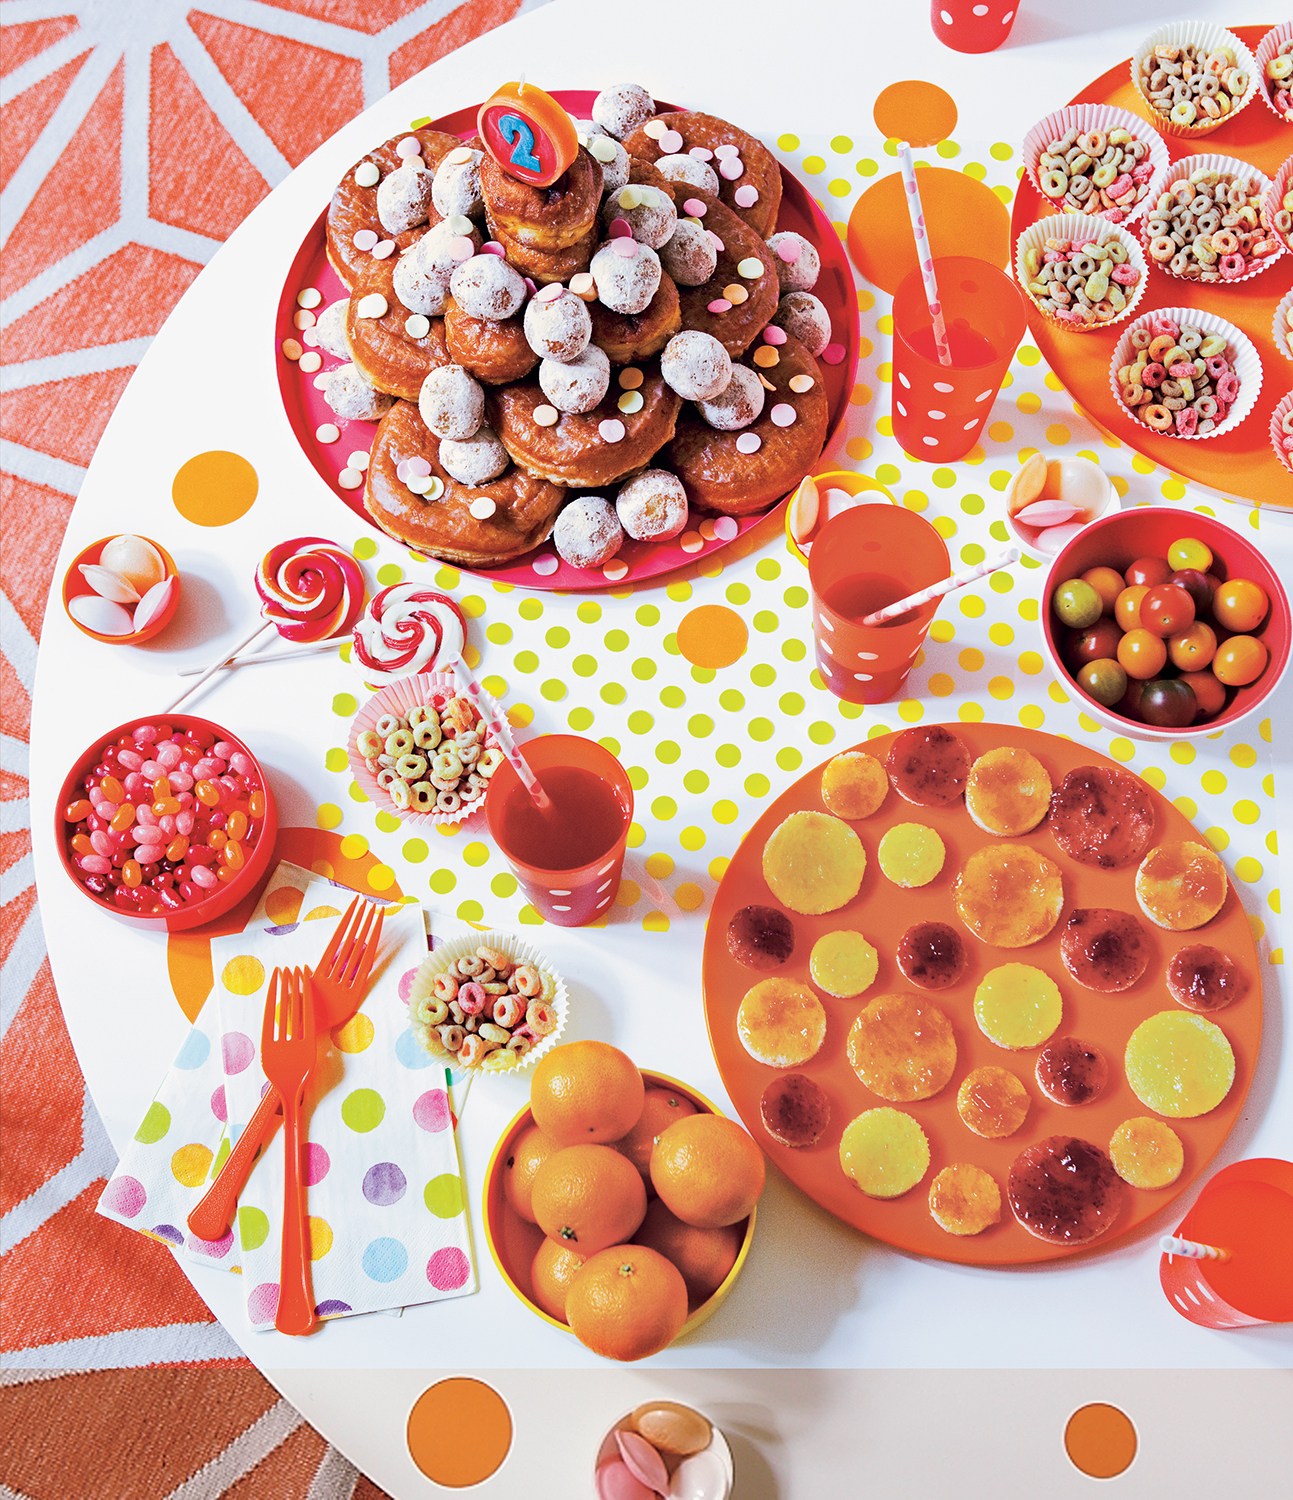 kids party ideas for boys childrens party spread with circle foods and treats kids birthday party ideas real simple